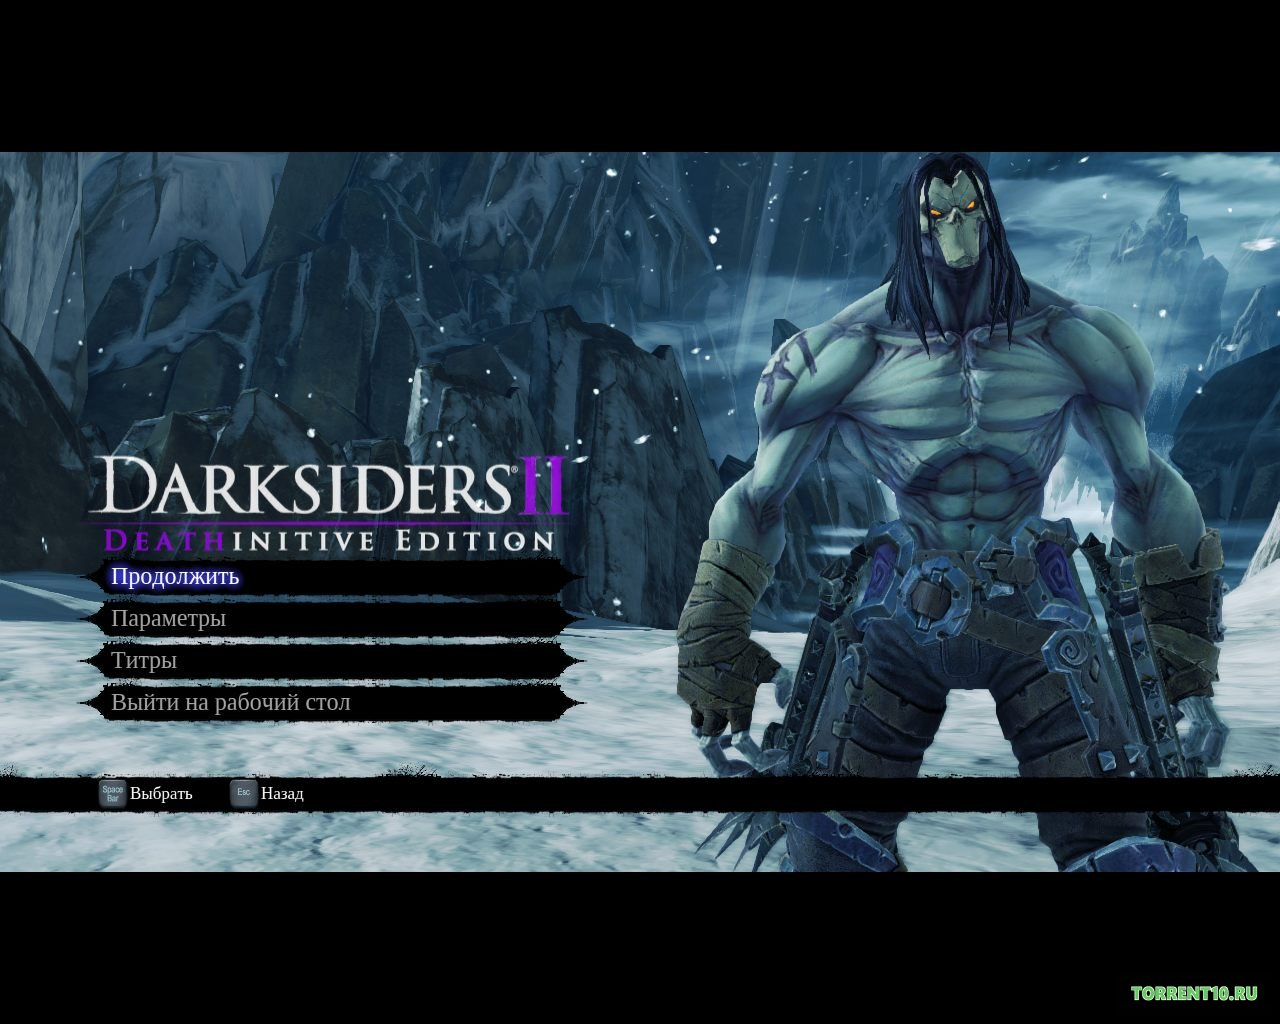 Darksiders 2: deathinitive edition update 2 (2015) pc (r. G.